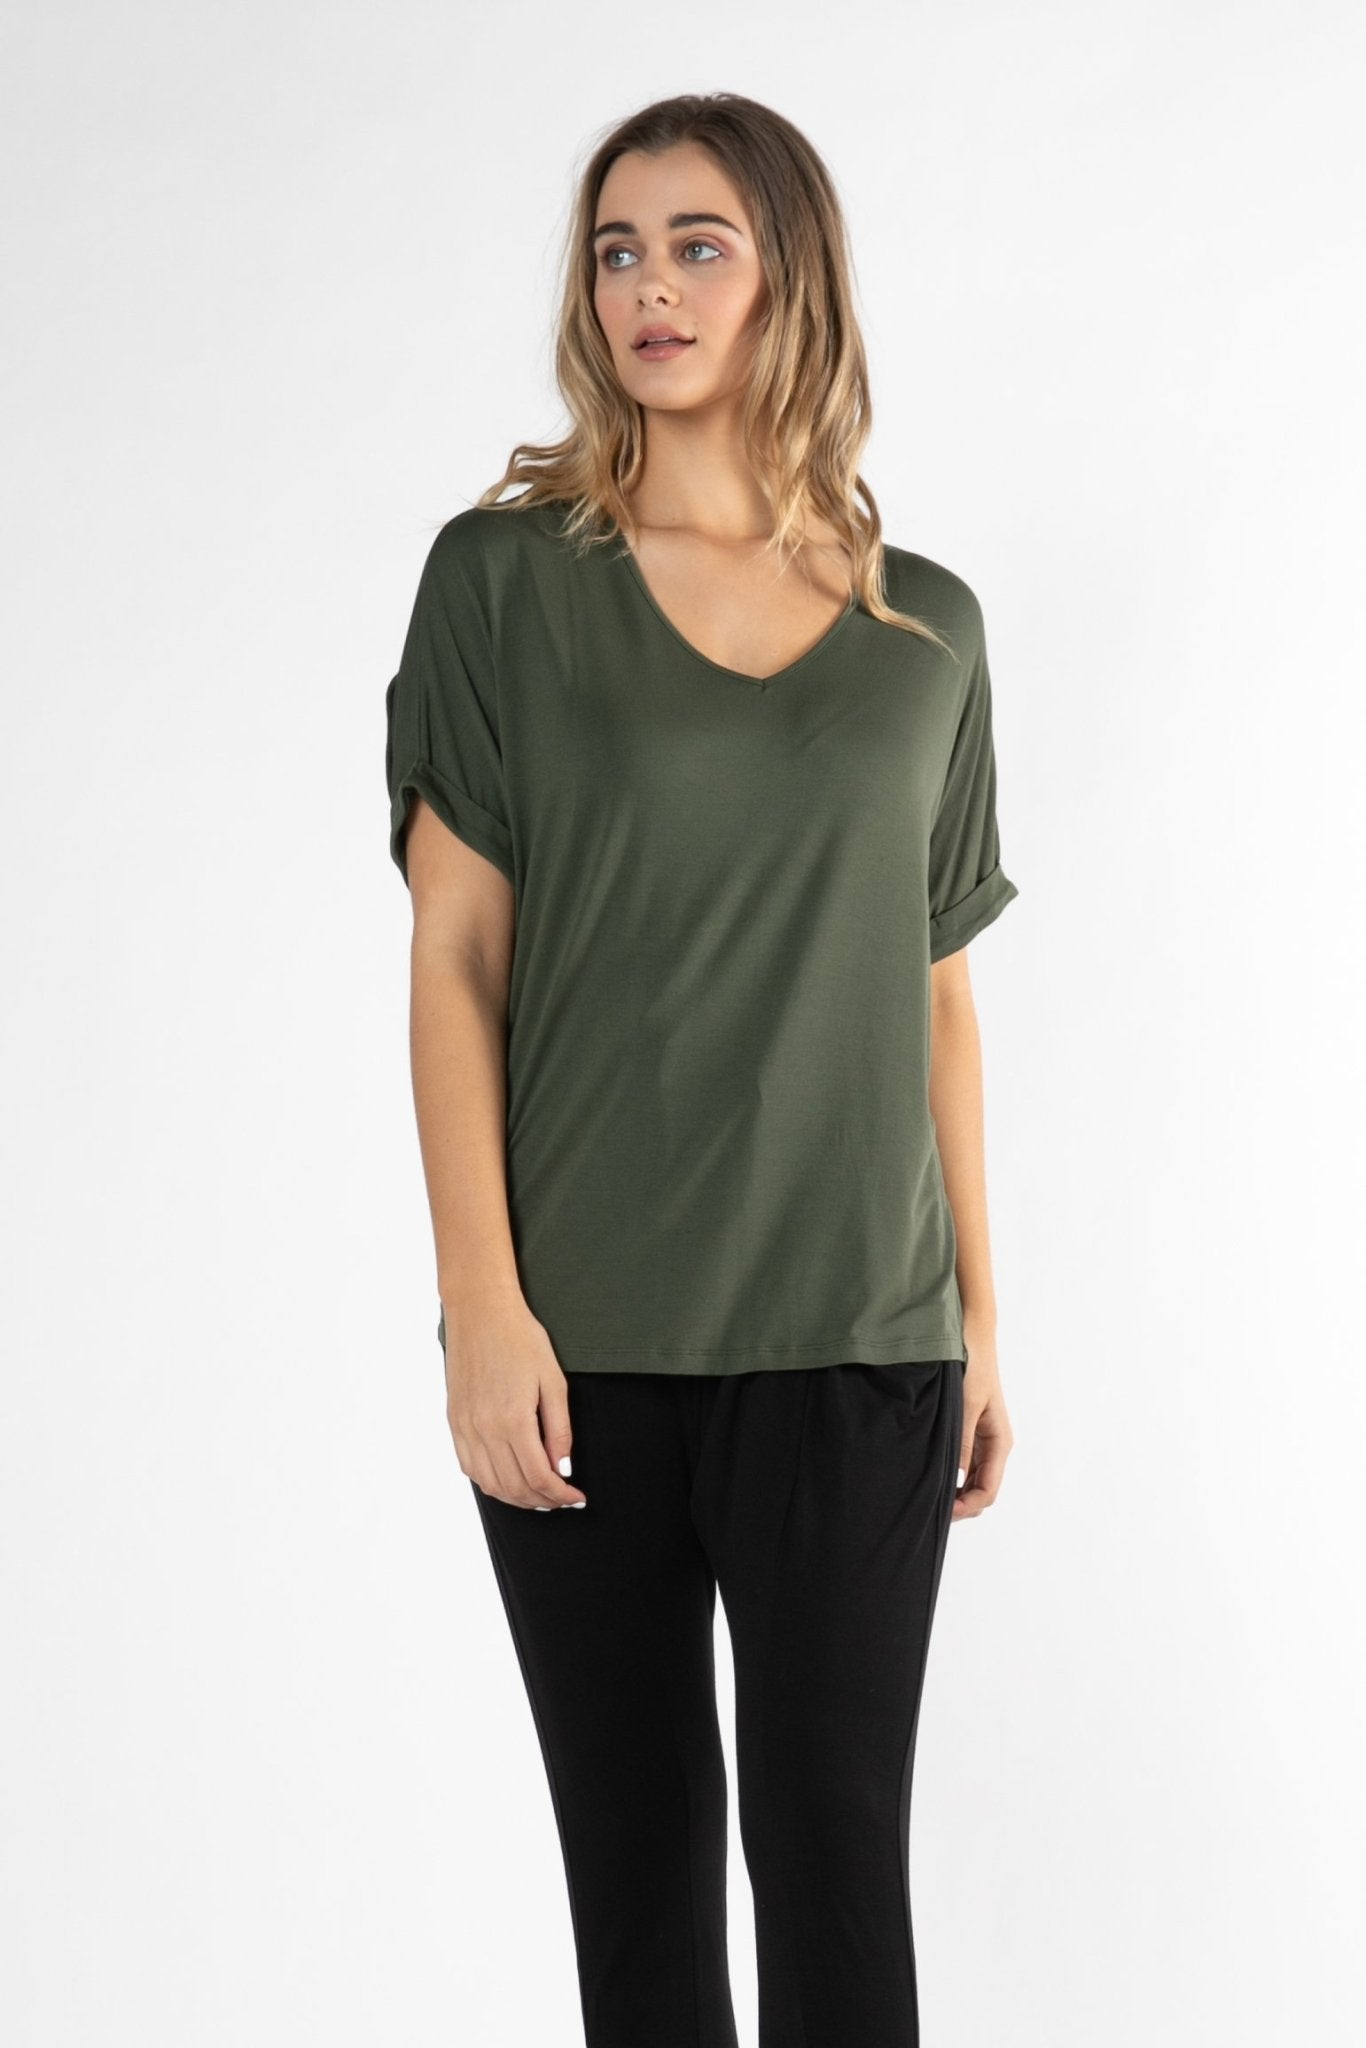 Betty Basics Granada Oversized Tee in Olive Size 10 Only - Hey Sara